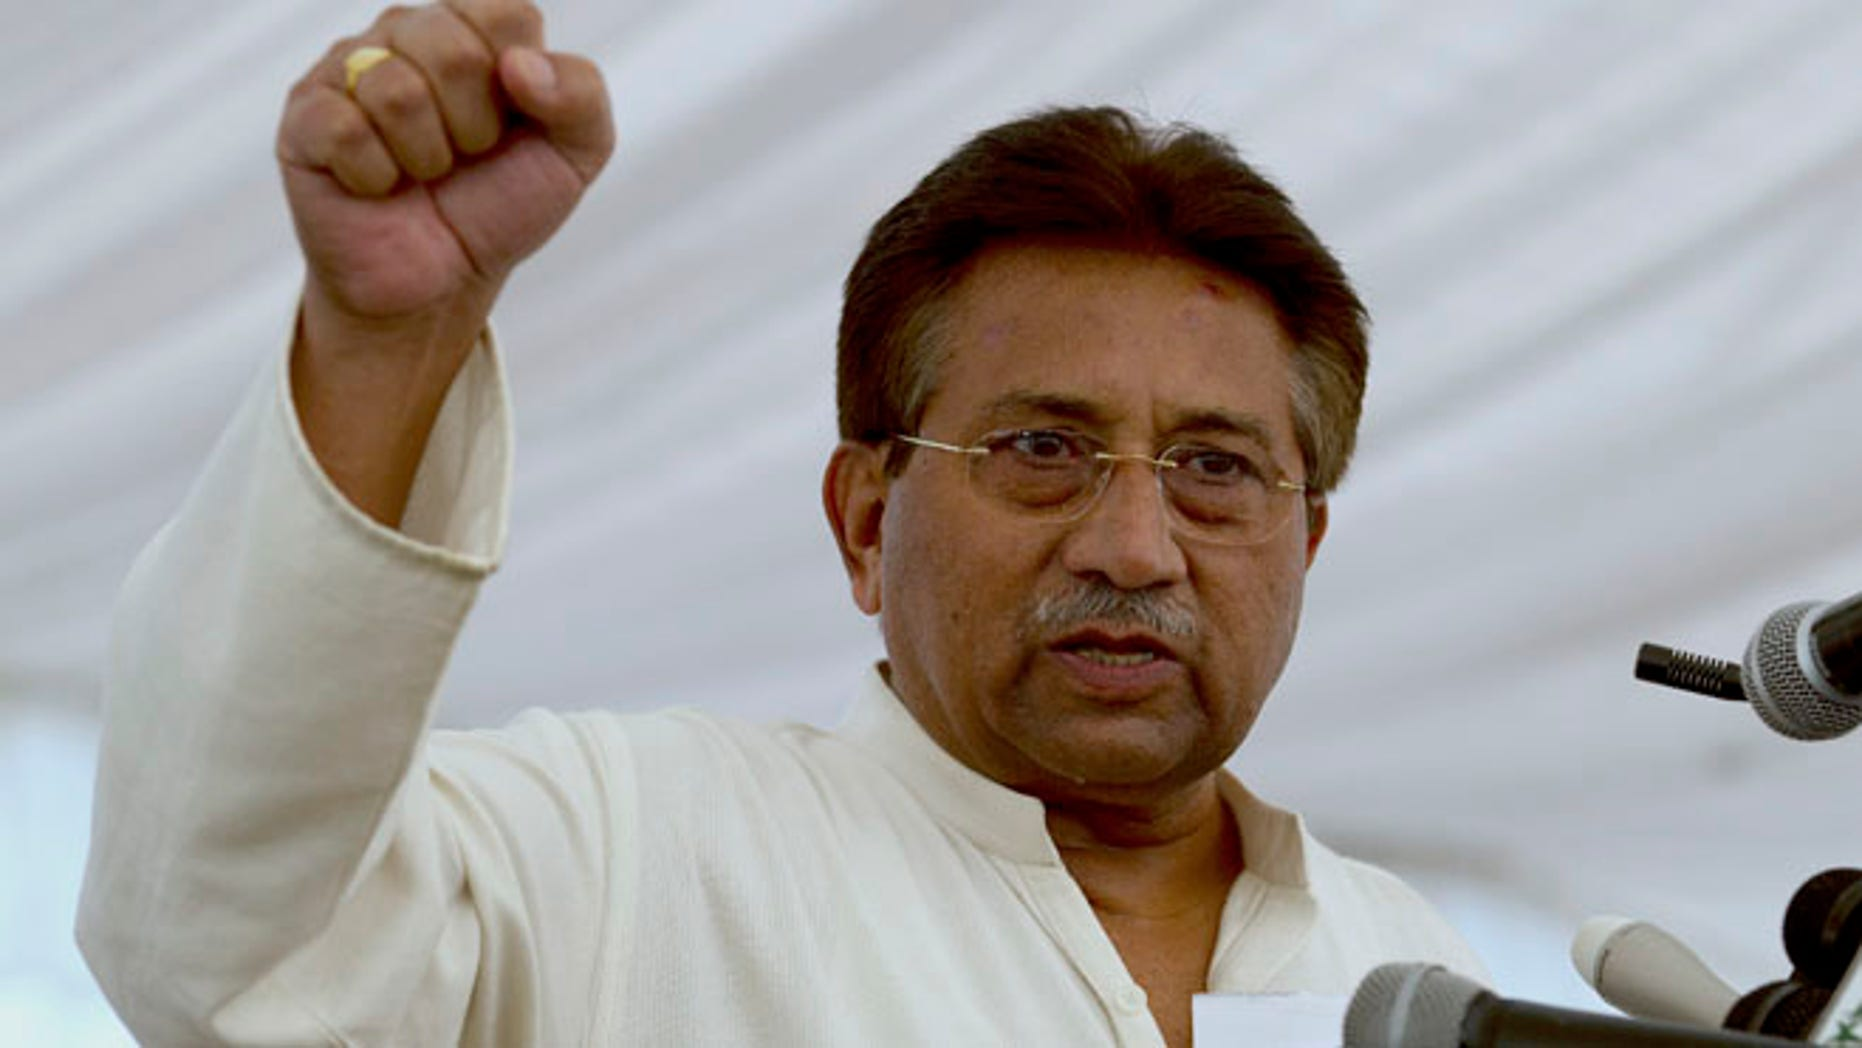 April 15, 2013: In this file photo, Pakistan's former President and military ruler Pervez Musharraf addresses his party supporters at his house in Islamabad, Pakistan.